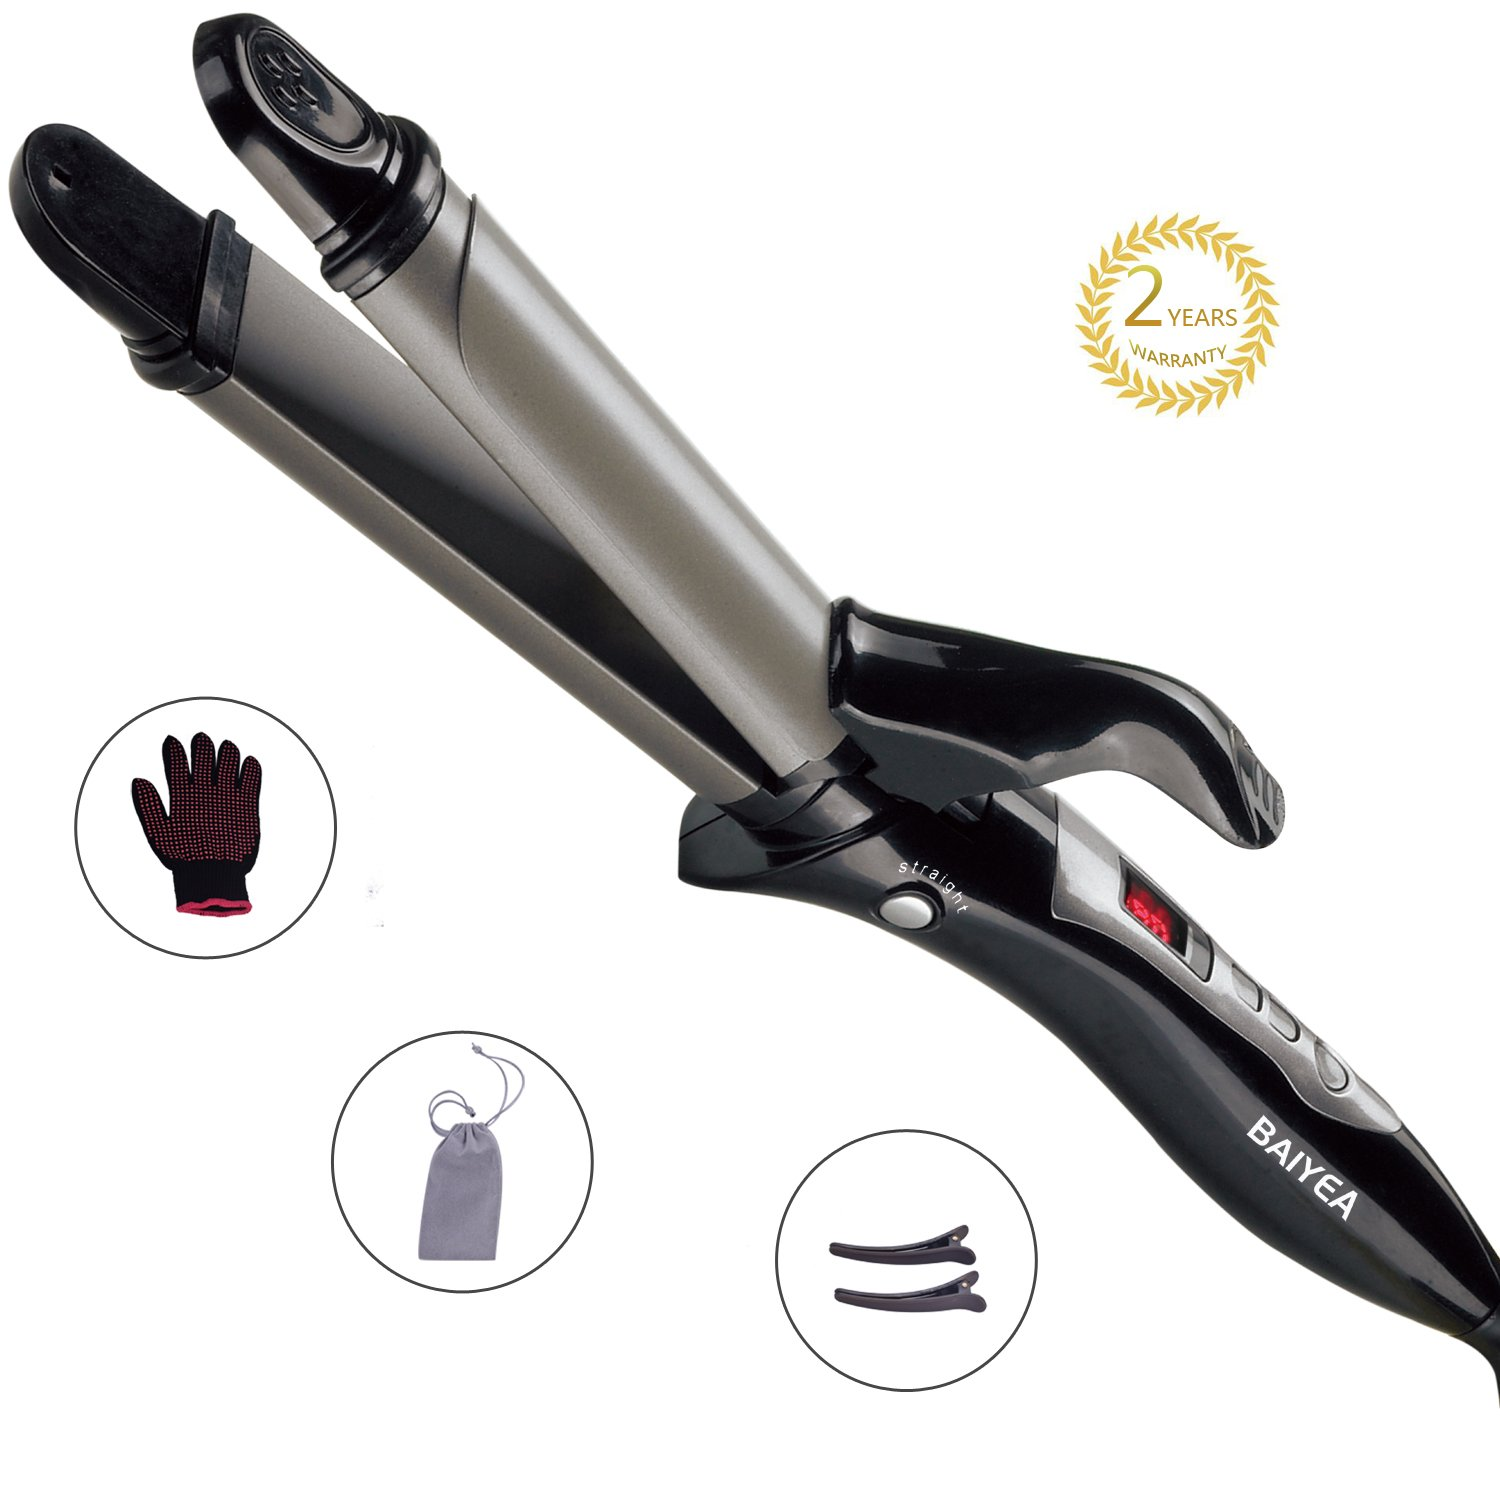 Baiyea Hair Straightener Professional Flat Iron Curling Wand 2 In 1 Anti-Static Ceramic Technology Straightens Curls Dual Voltage Adjustable Temp LCD Display for All Hair Type